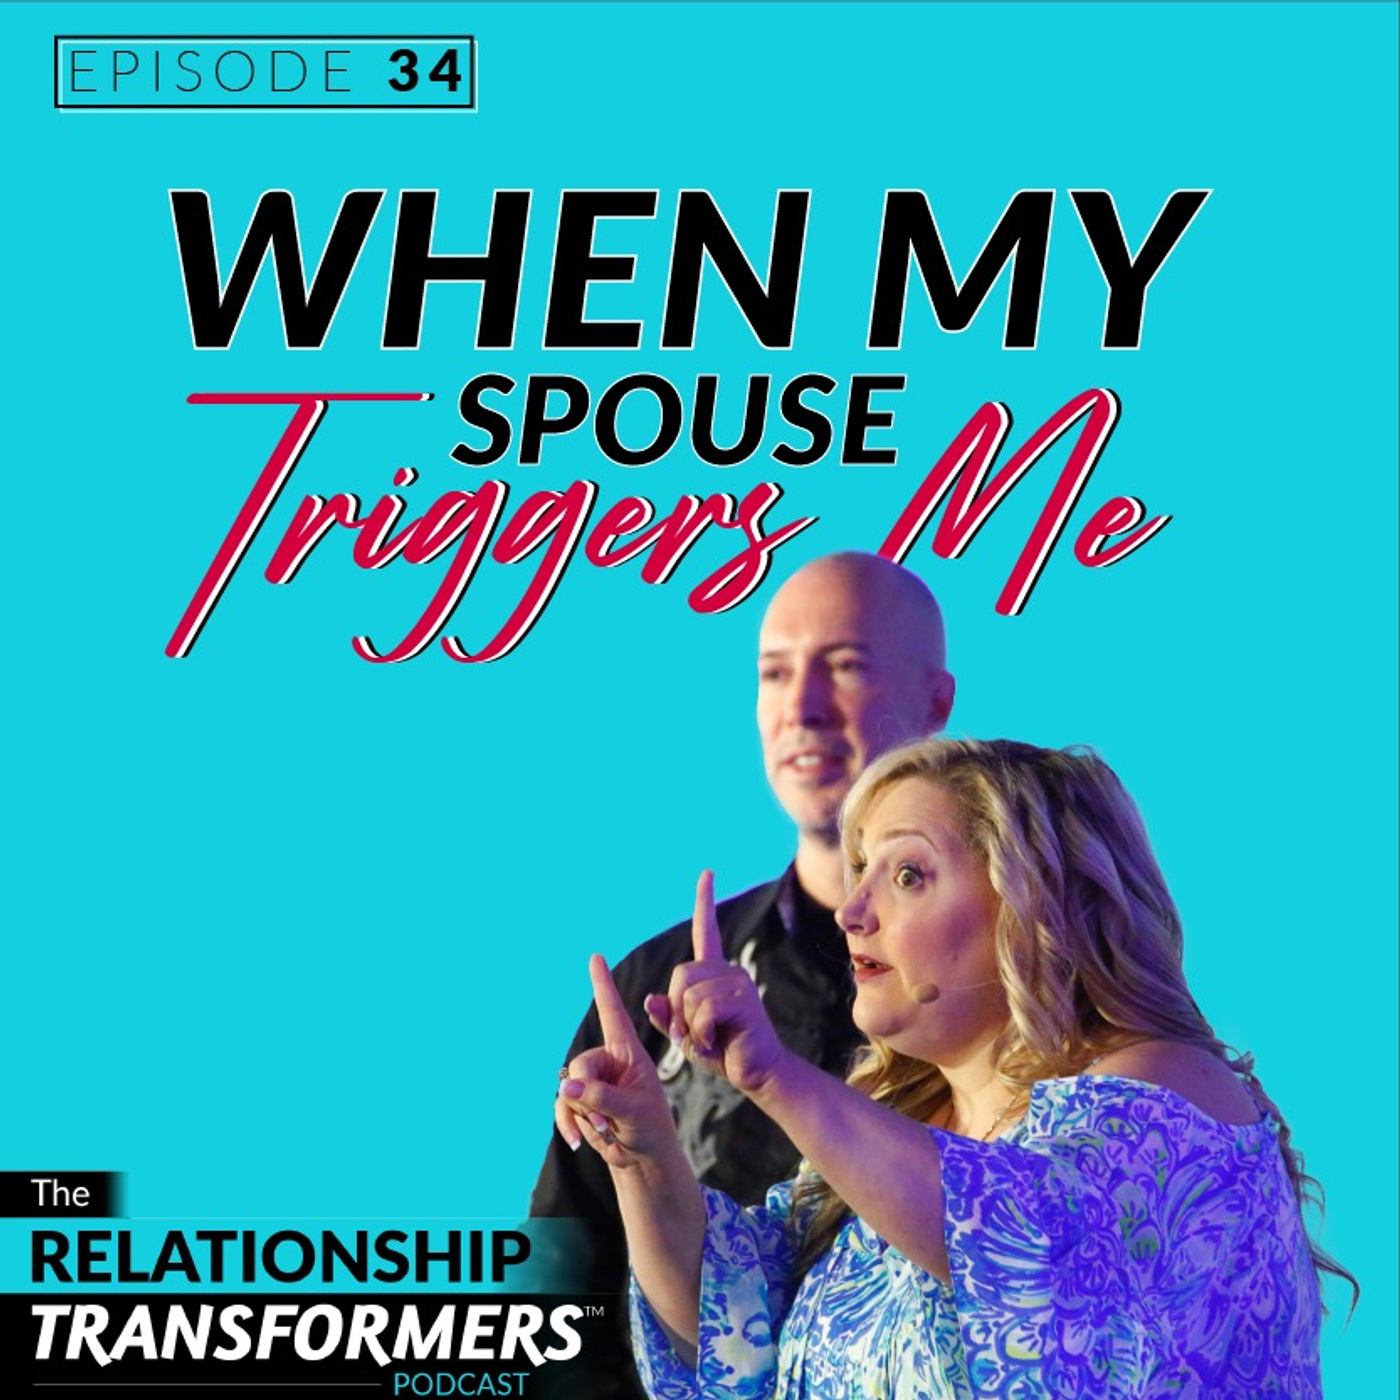 Relationship Transformers - 34: My Spouse Triggers Me